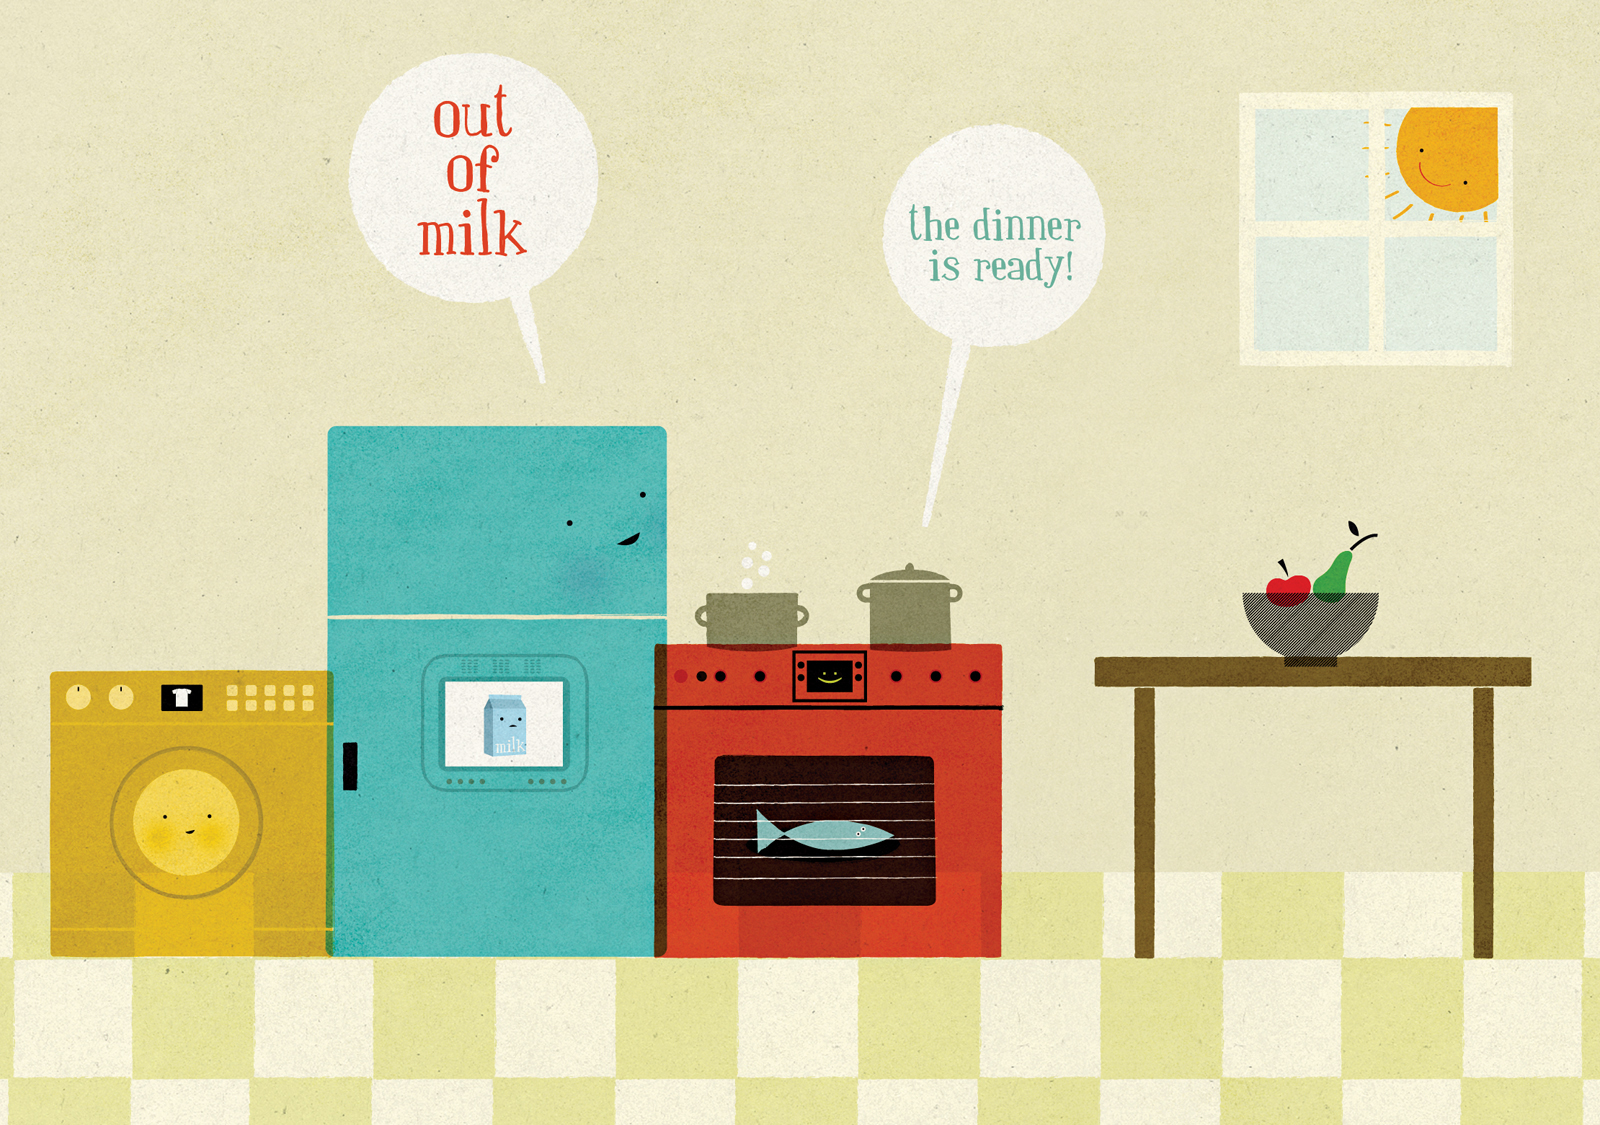 home smart home out of milk